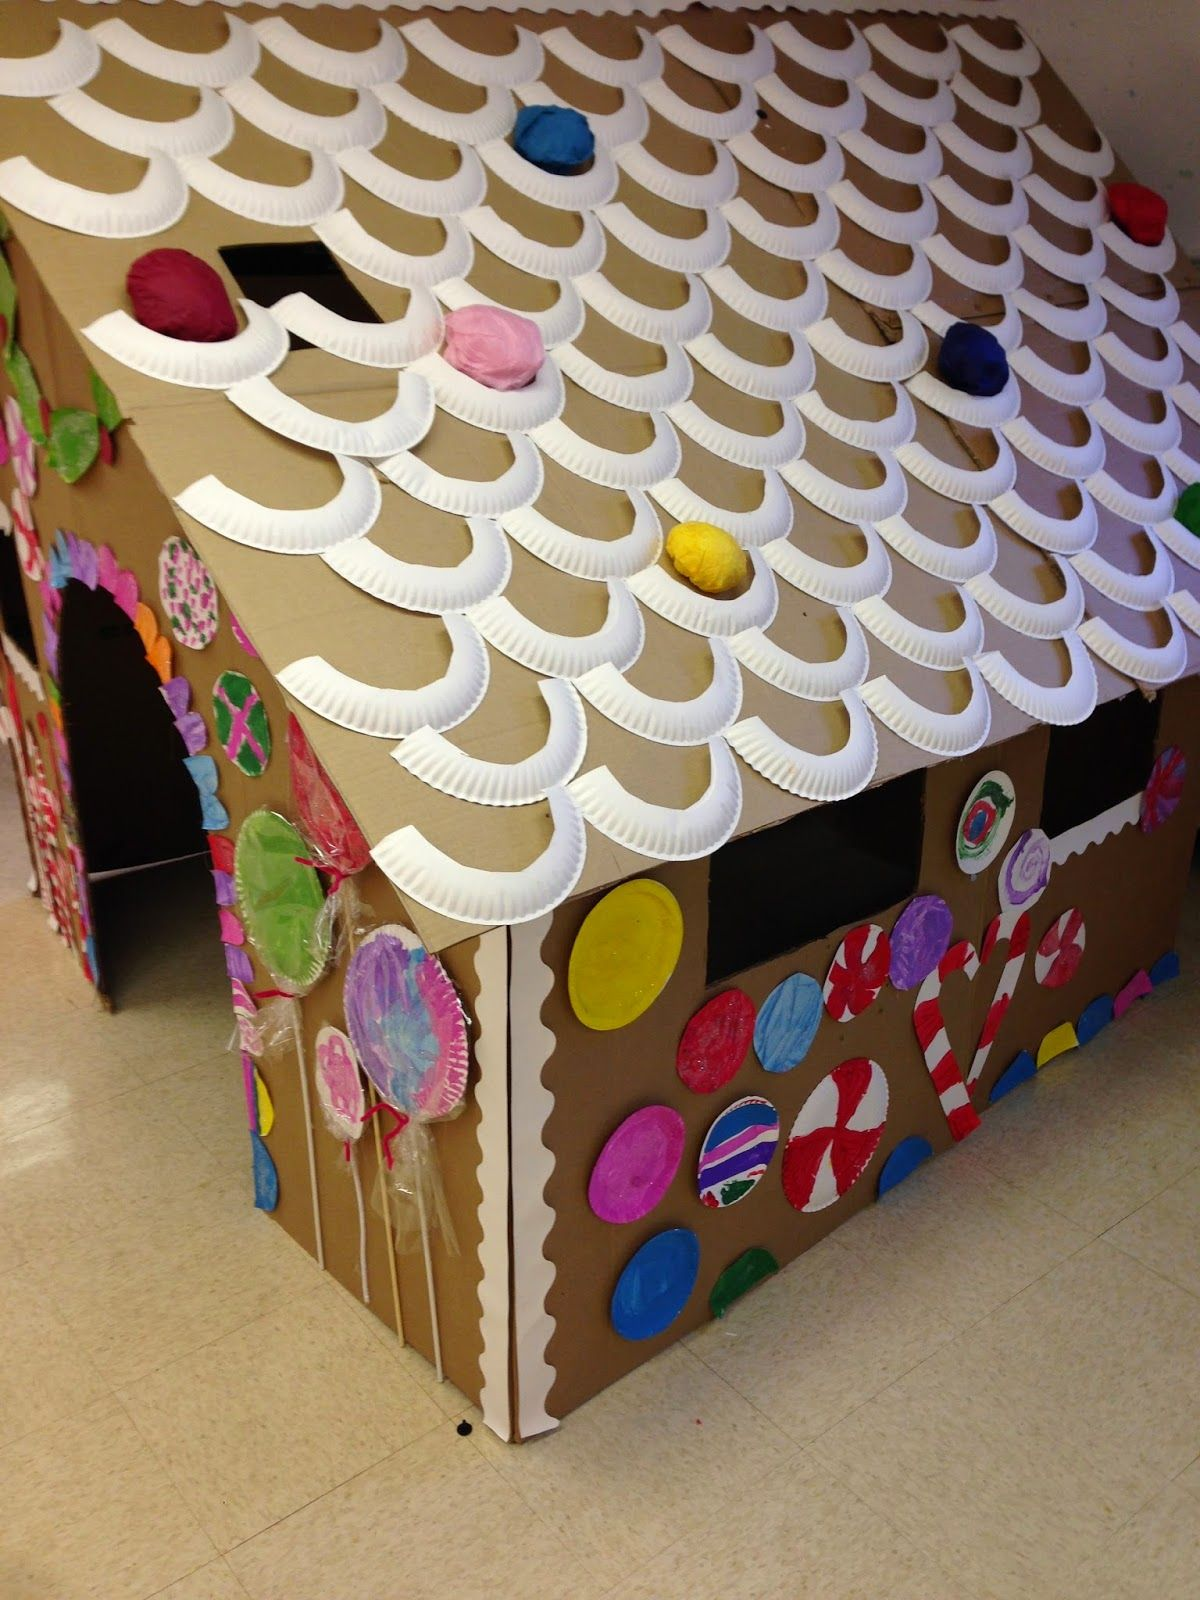 Stupendous Life Size Gingerbread House A Fun Winter Activity For Kids Download Free Architecture Designs Rallybritishbridgeorg